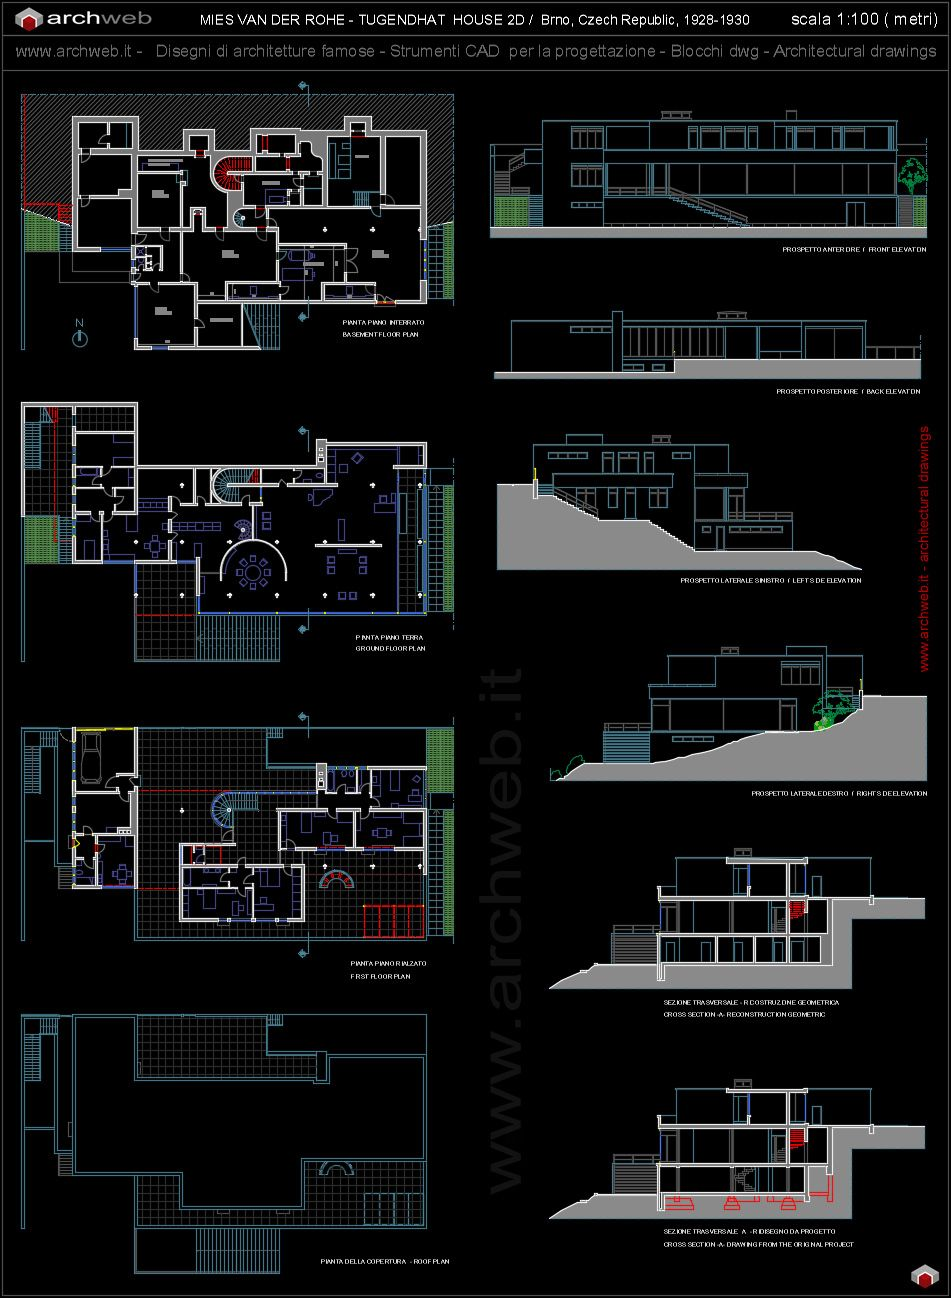 Tugendhat House Autocad Dwg Pinteres  # Muebles Mies Van Der Rohe Autocad